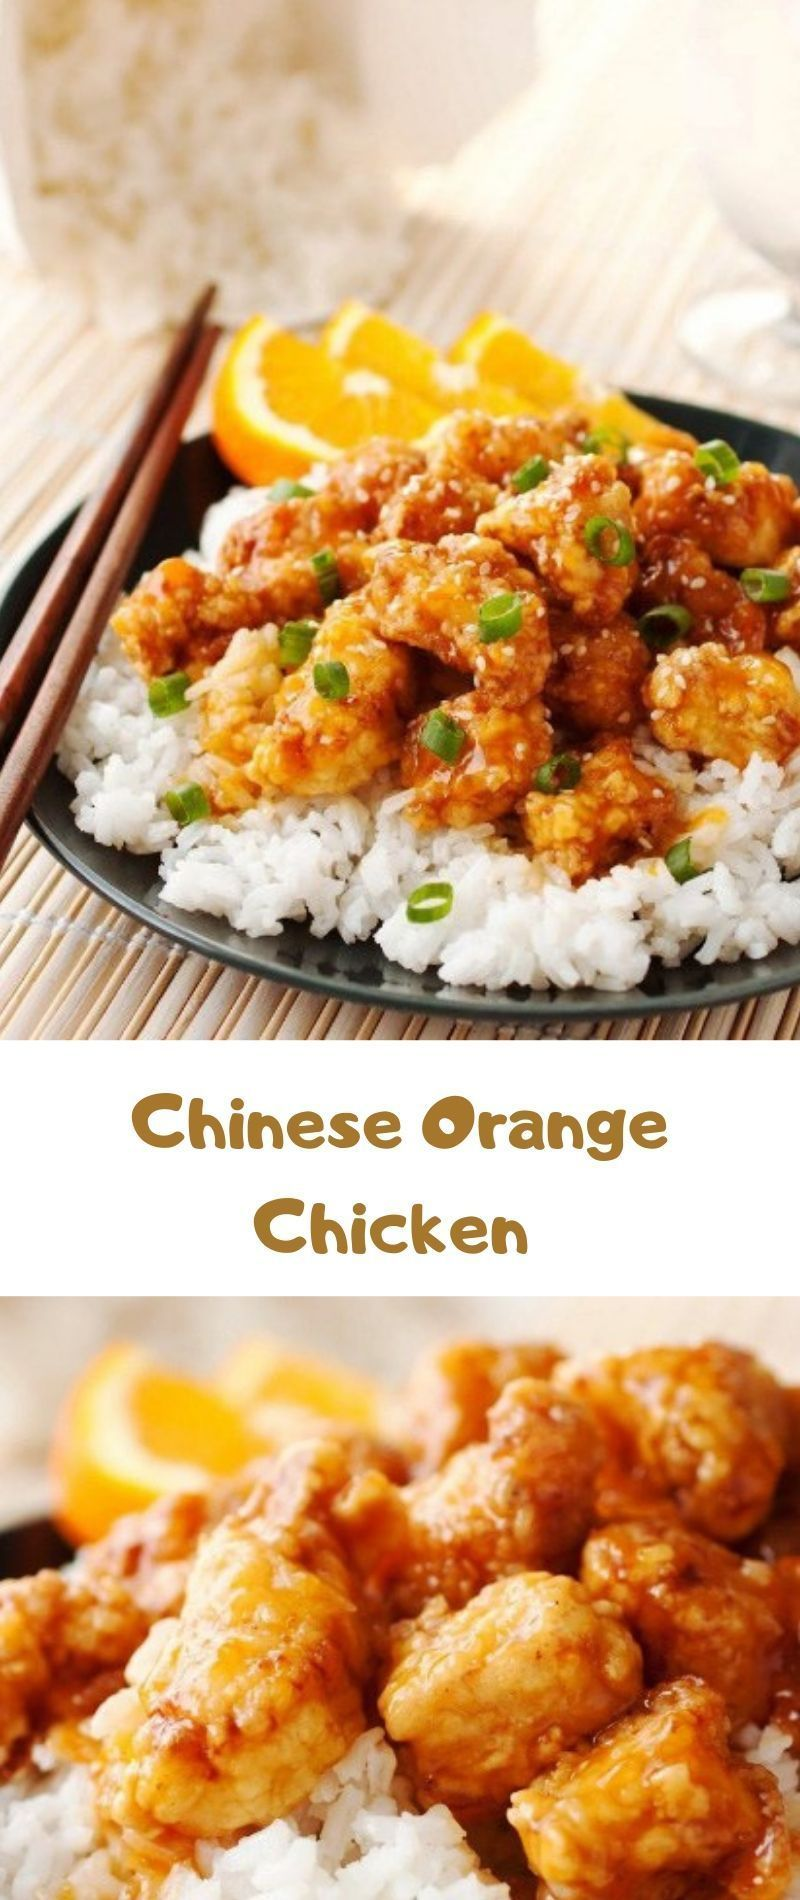 Chinese Orange Chicken Recipe #chineseorangechicken Chinese Orange Chicken Recipe better than you have ever had before! It's brimming with fresh orange flavor and no jarred orange marmalade or corn syrup here. It far outdoes Panda Express, and Chinese chain restaurants orange chicken. #chineseorangechicken Chinese Orange Chicken Recipe #chineseorangechicken Chinese Orange Chicken Recipe better than you have ever had before! It's brimming with fresh orange flavor and no jarred orange marmalad #chineseorangechicken